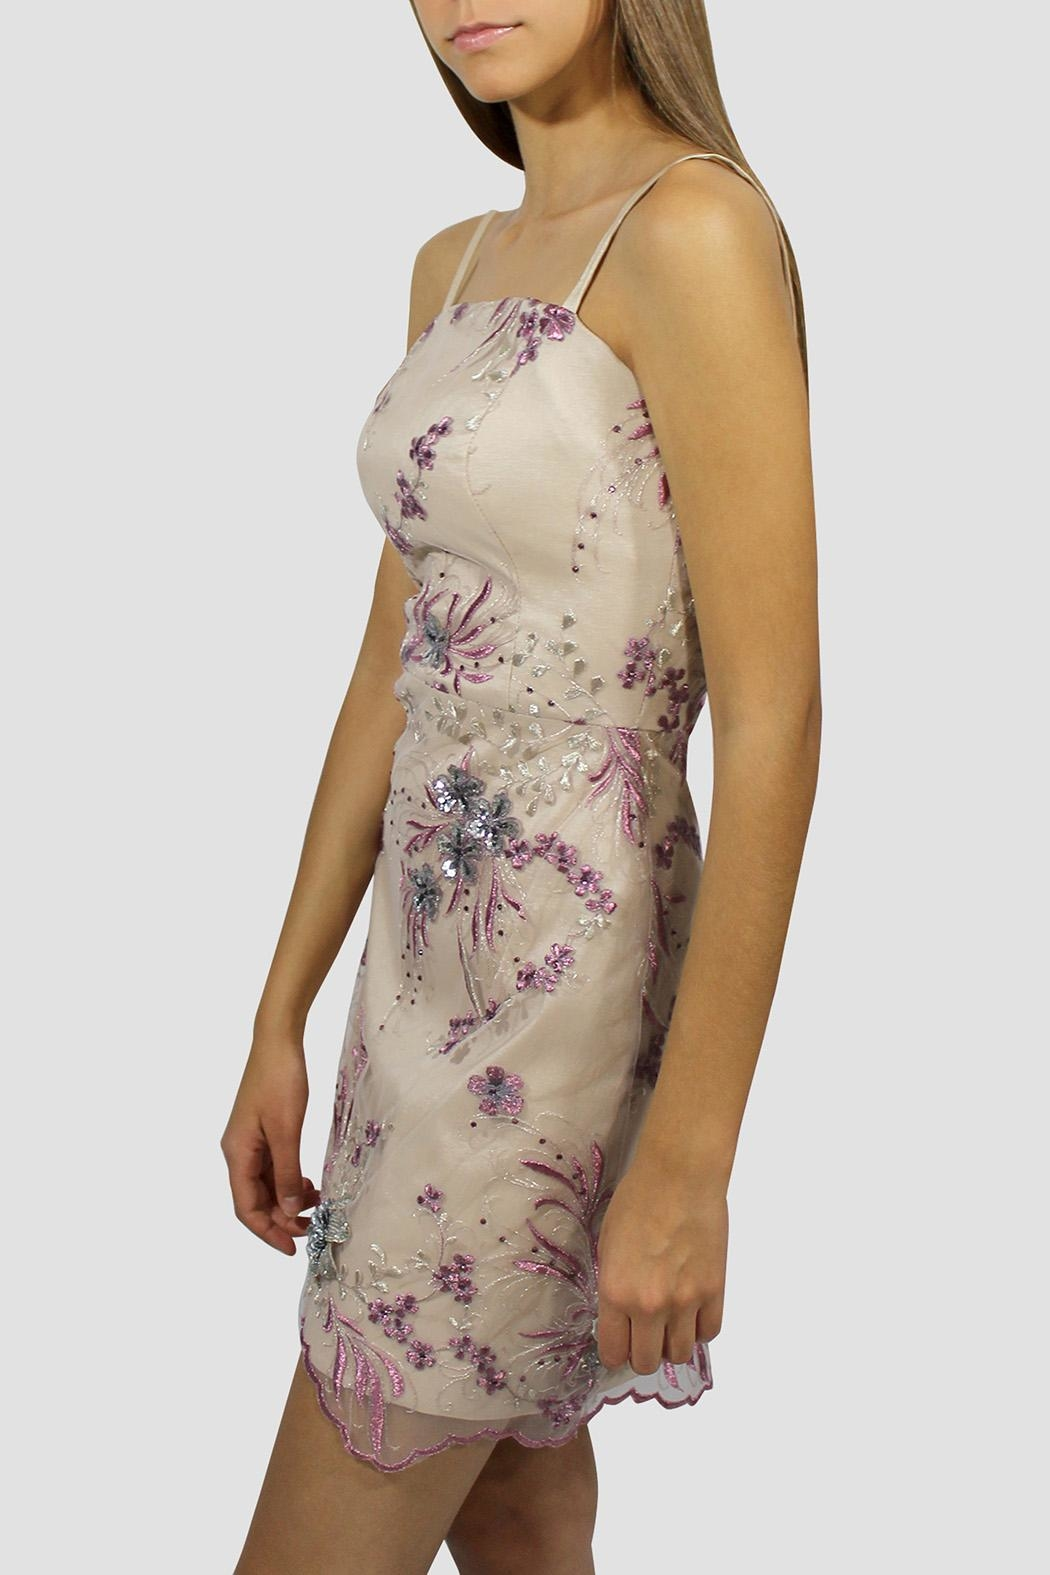 SoZu Floral Lace Sheath Dress - Front Full Image